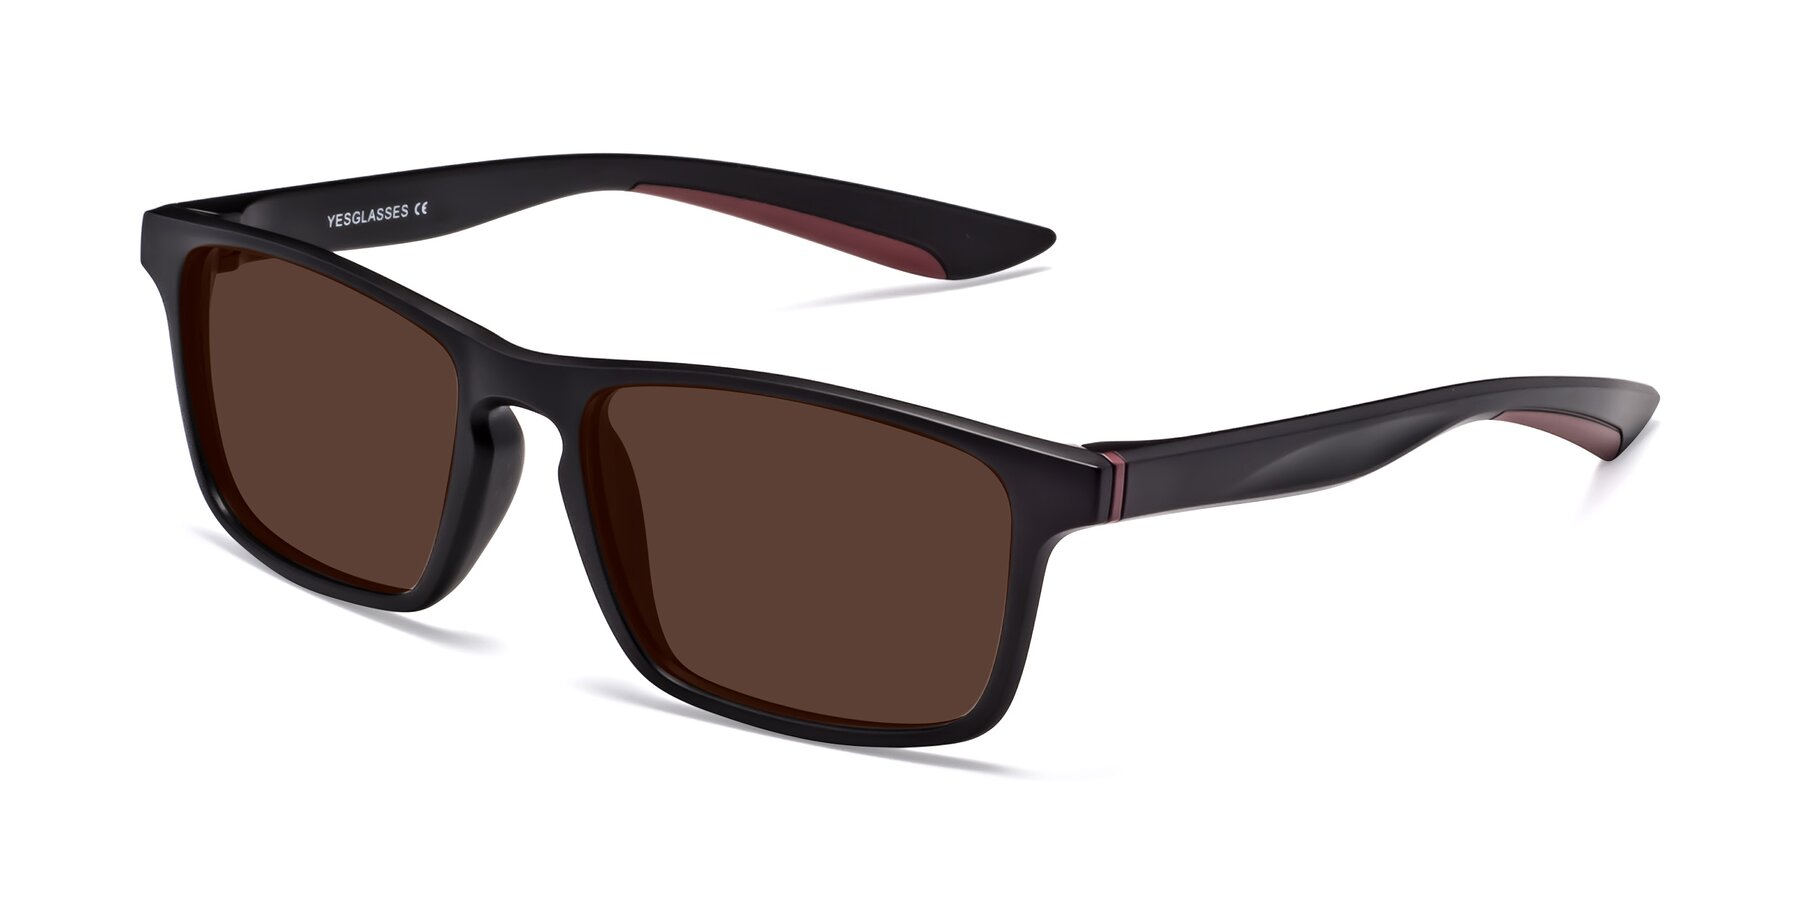 Angle of Passion in Matte Black-Wine with Brown Tinted Lenses